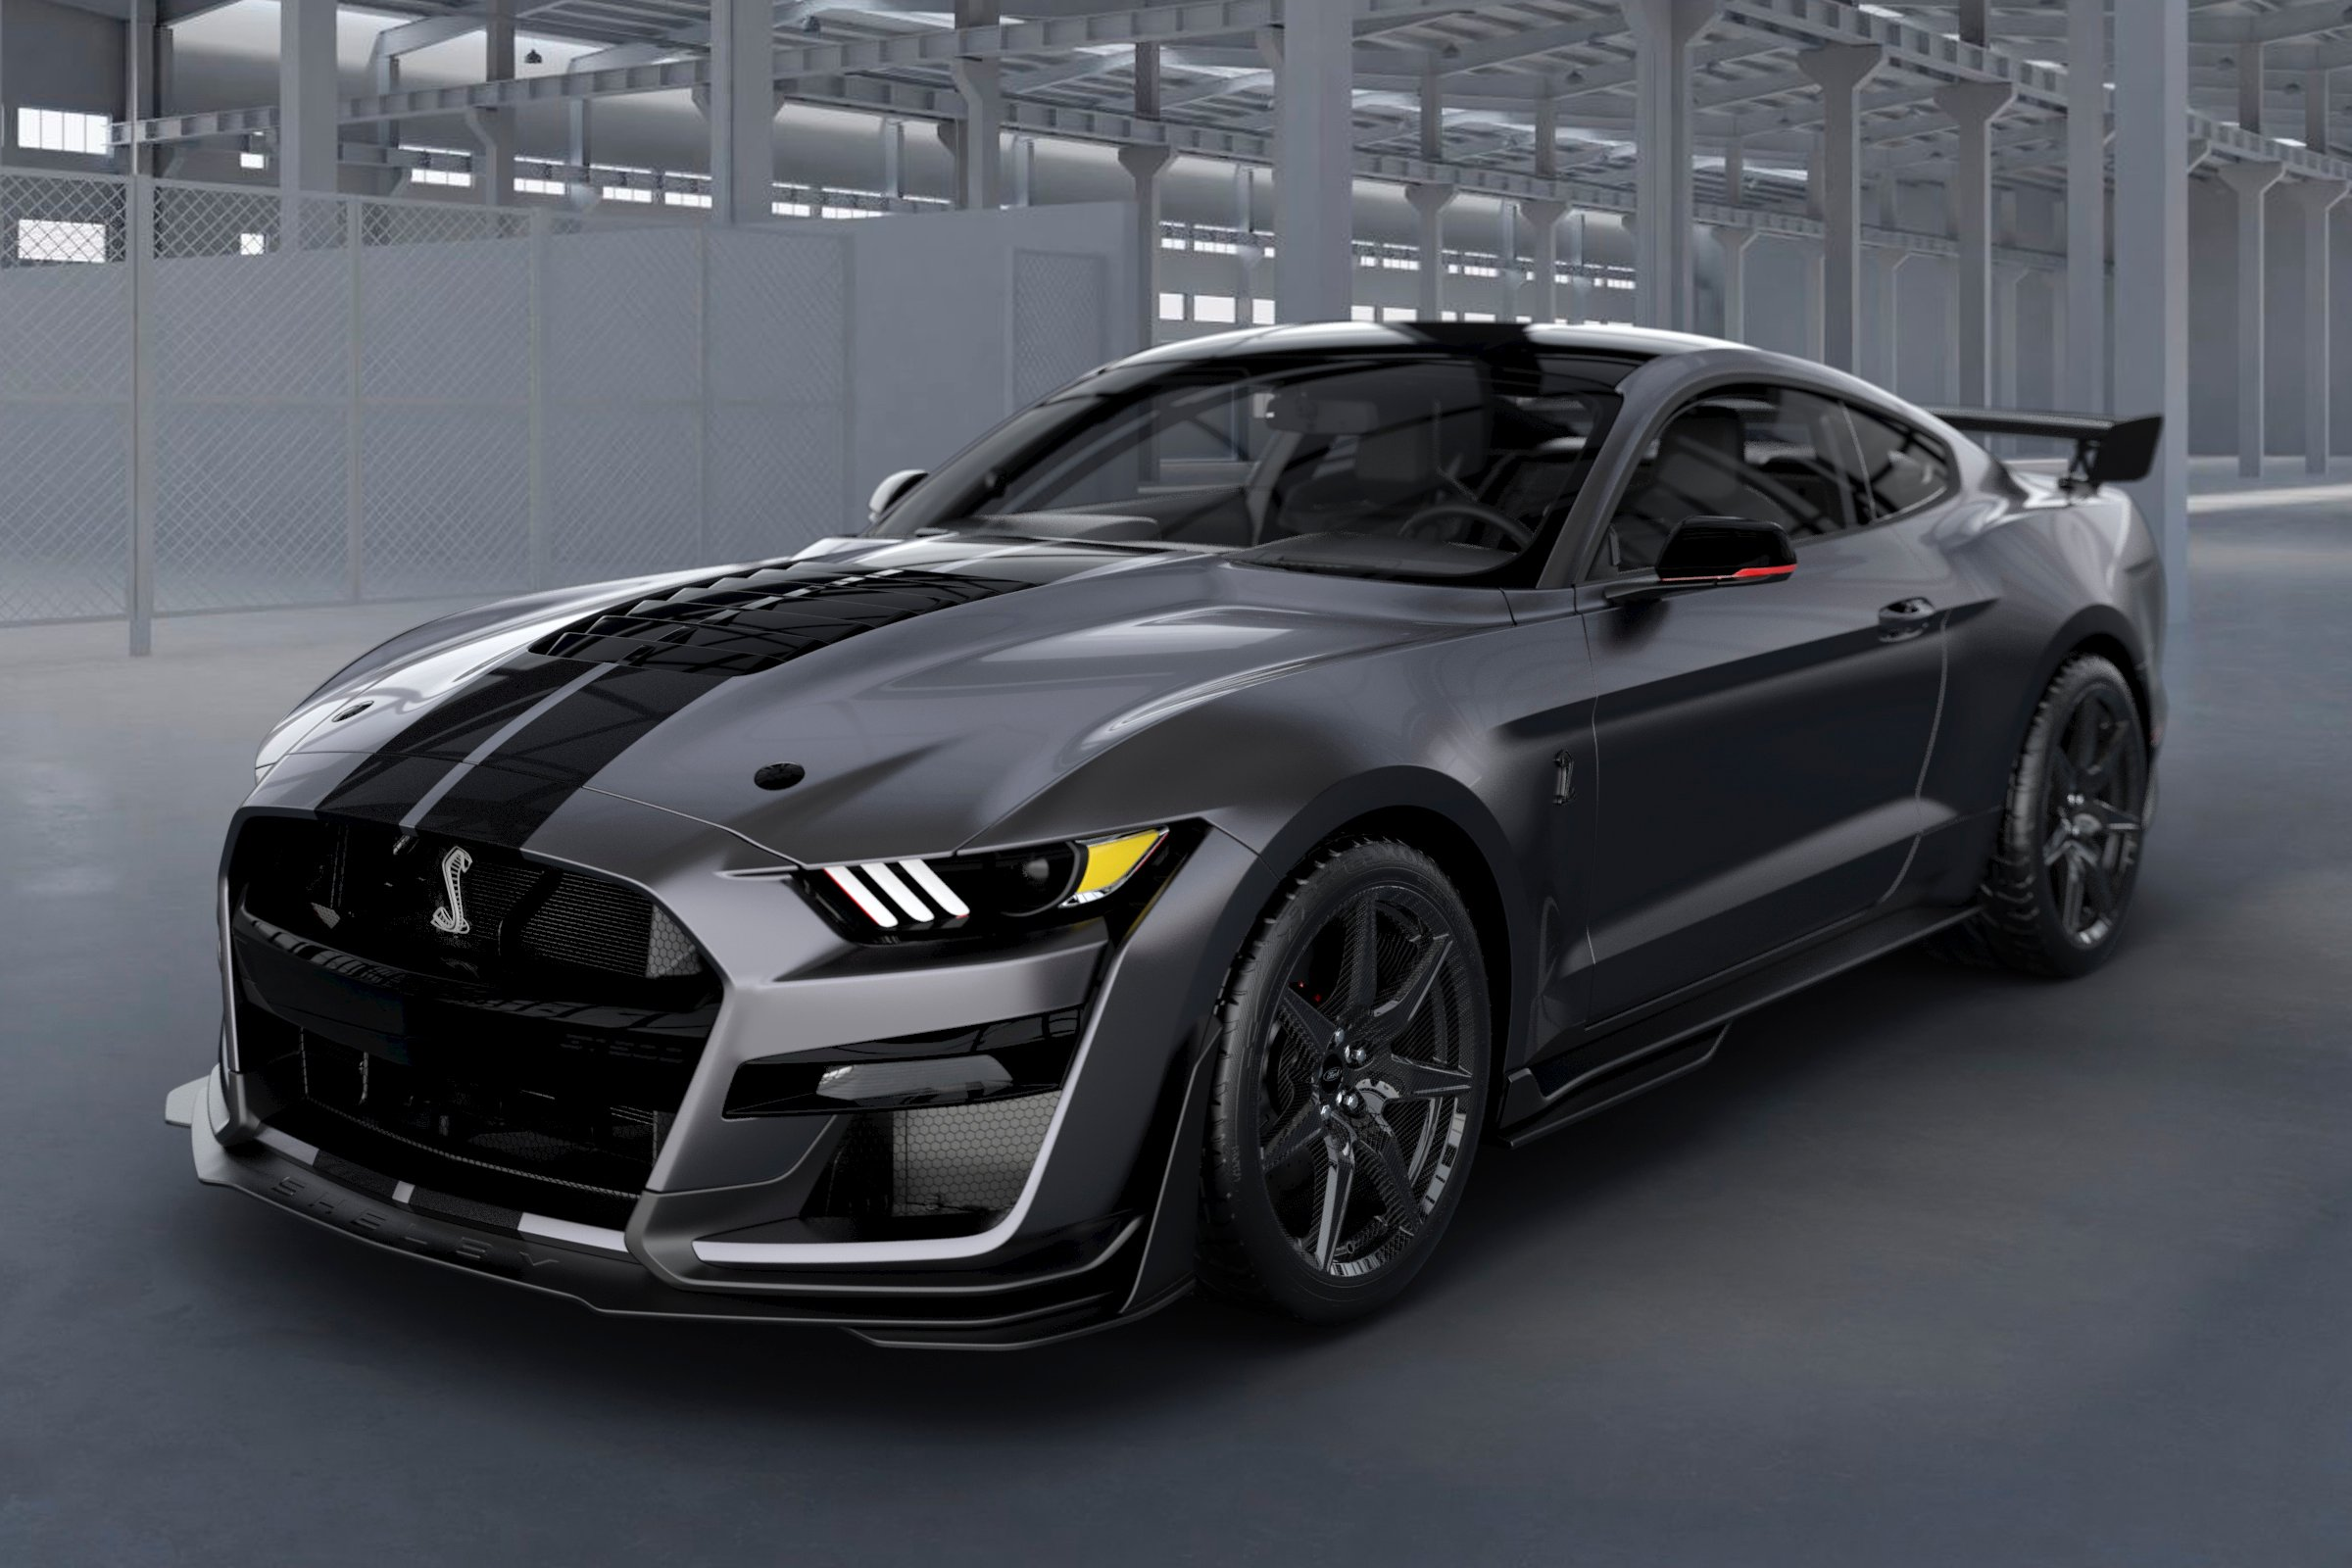 You Could Win A Unique 'Venom' 2020 Shelby GT500 For Just $10!